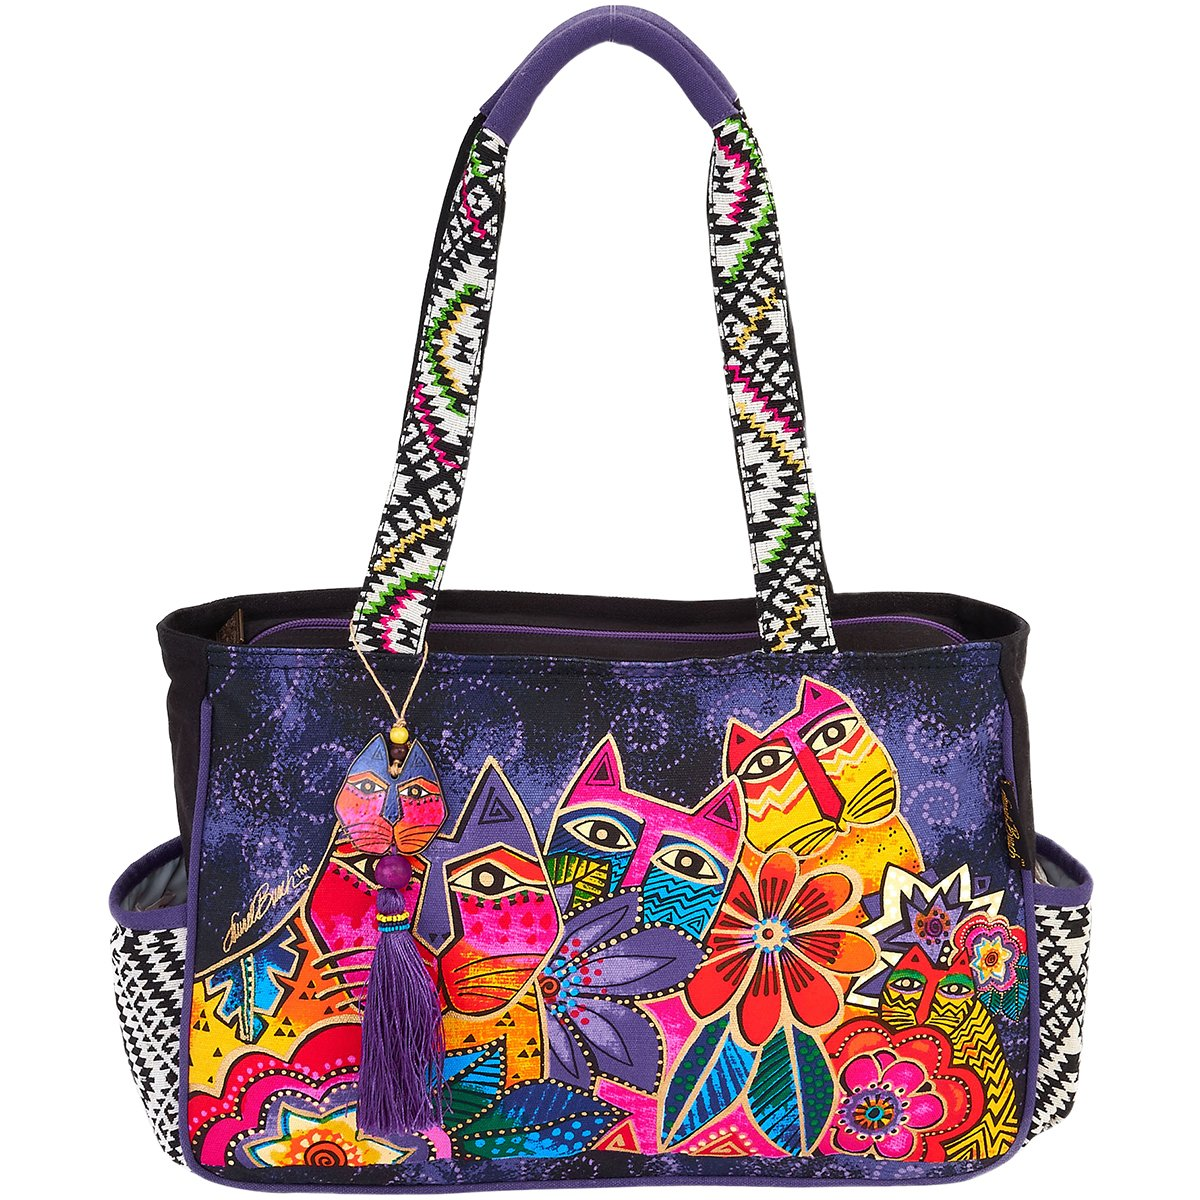 Laurel Burch Laurel's Garden Medium Tote Handbag